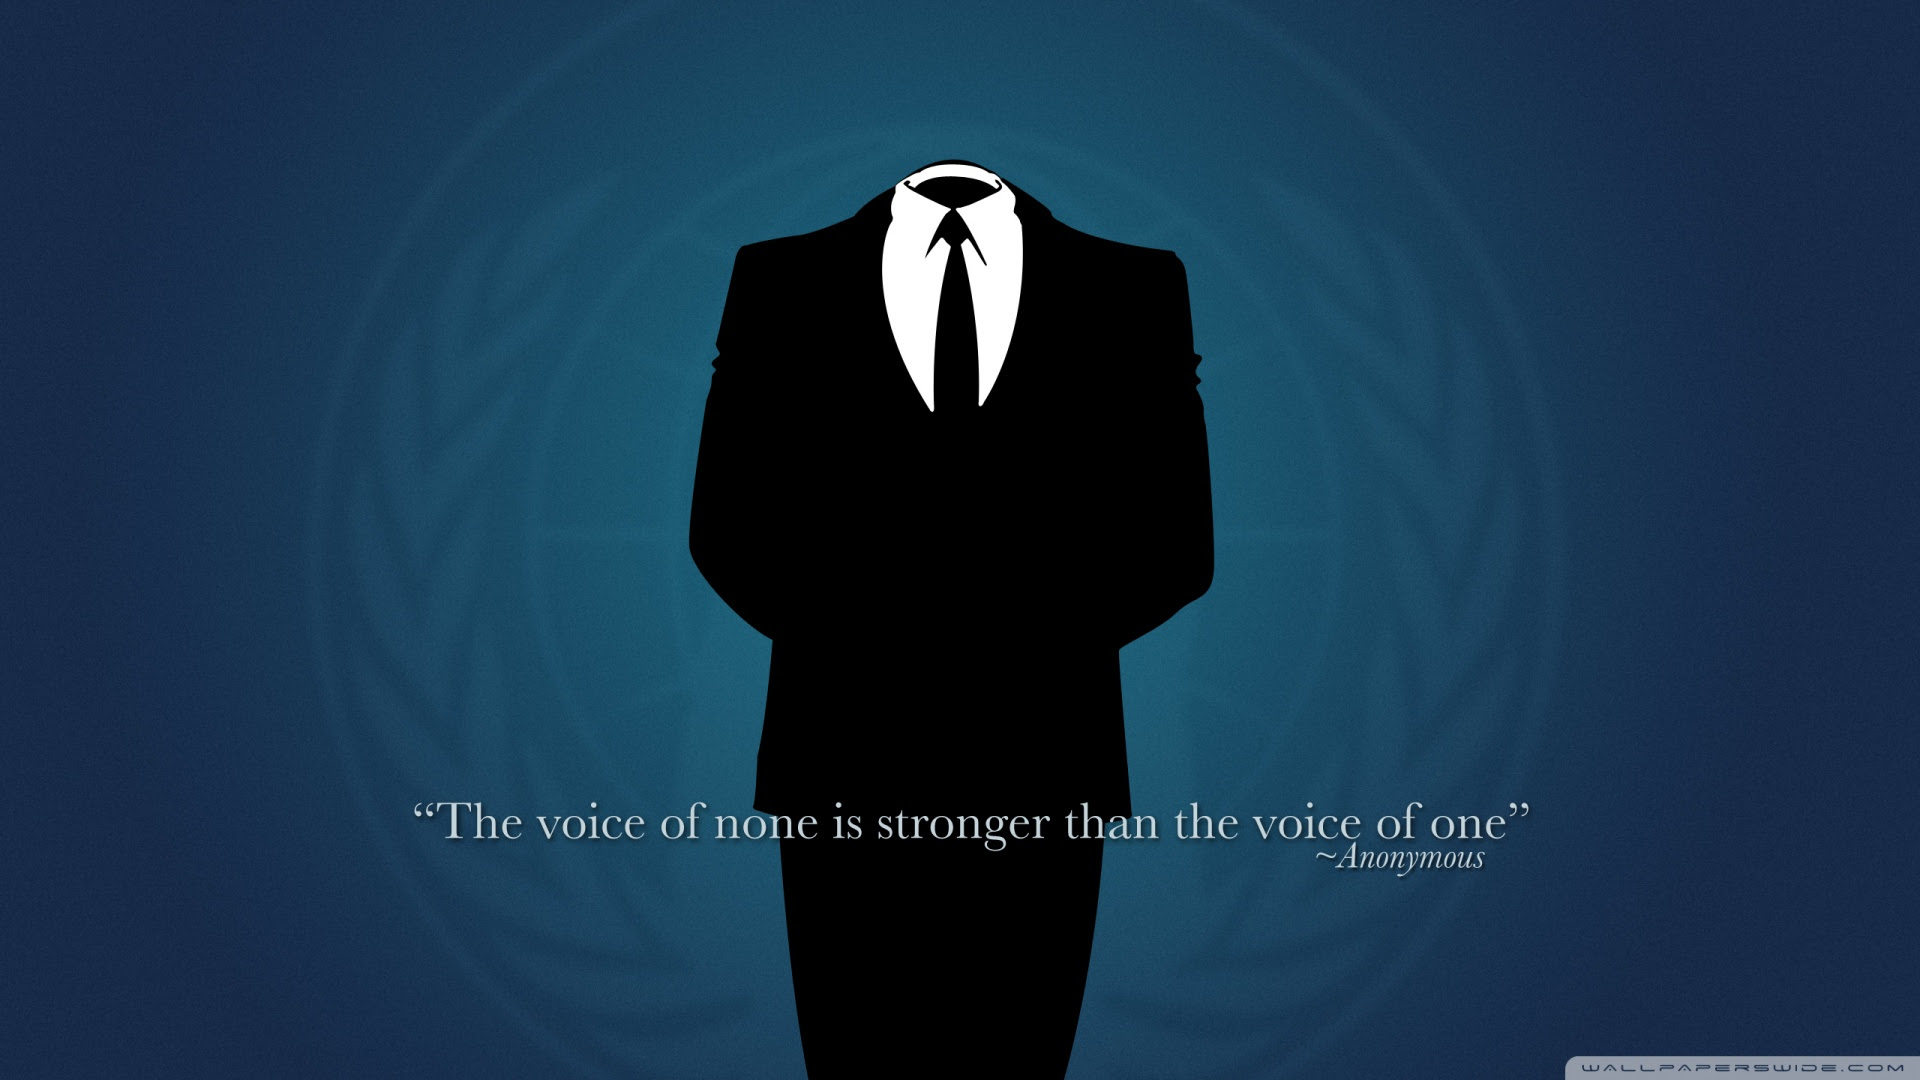 Anonymous Quotes 4k Hd Desktop Wallpaper For 4k Ultra Hd Tv